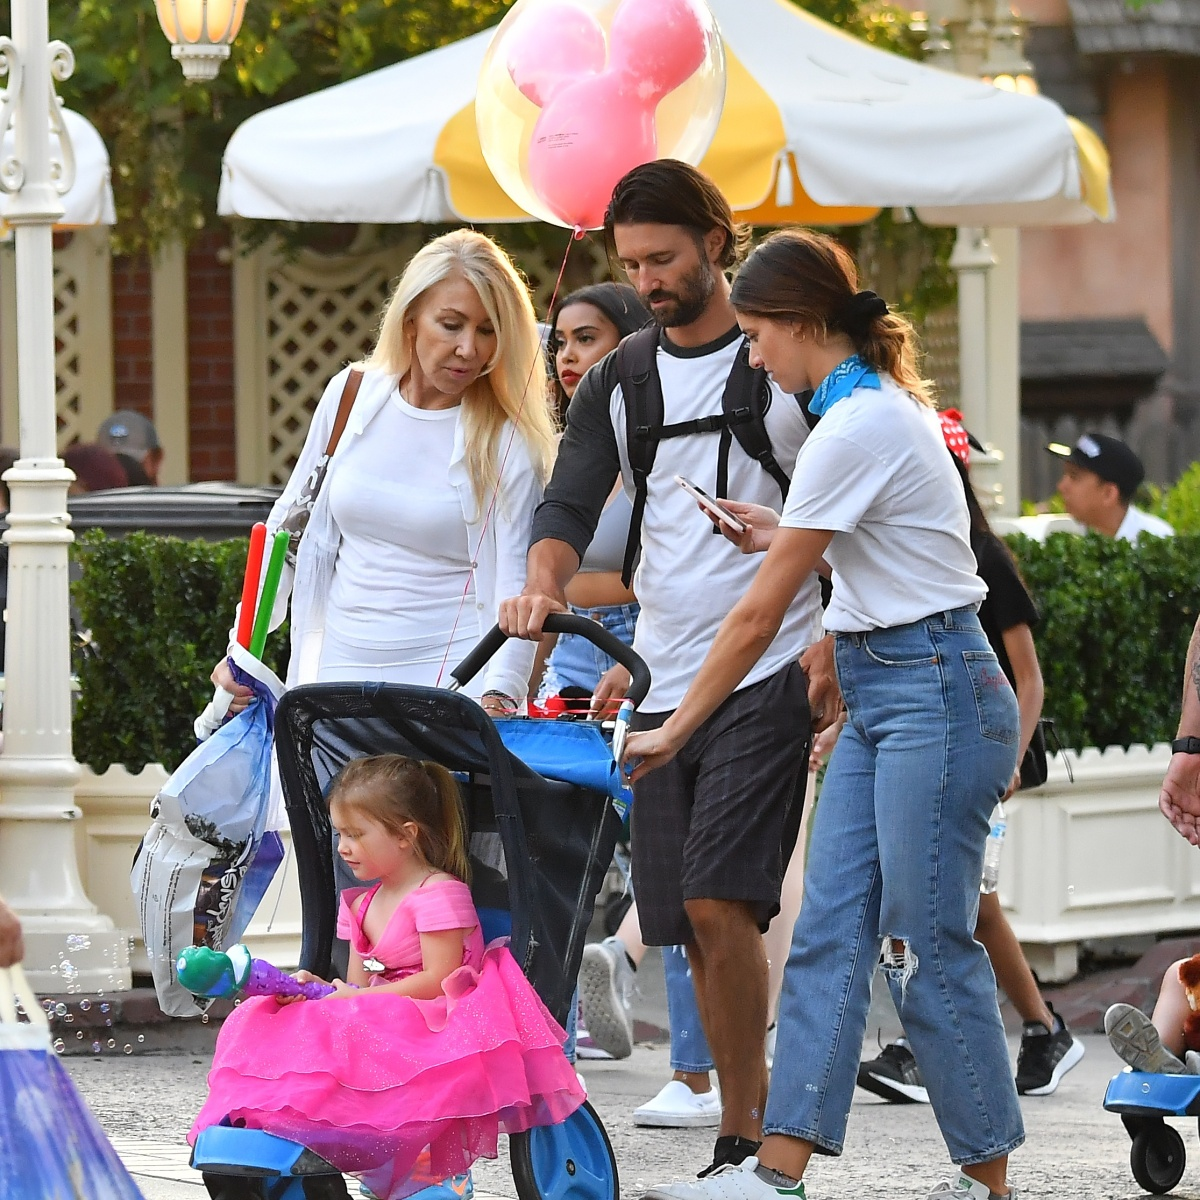 Brandon Jenner Spotted With New GF After Finalizing Divorce